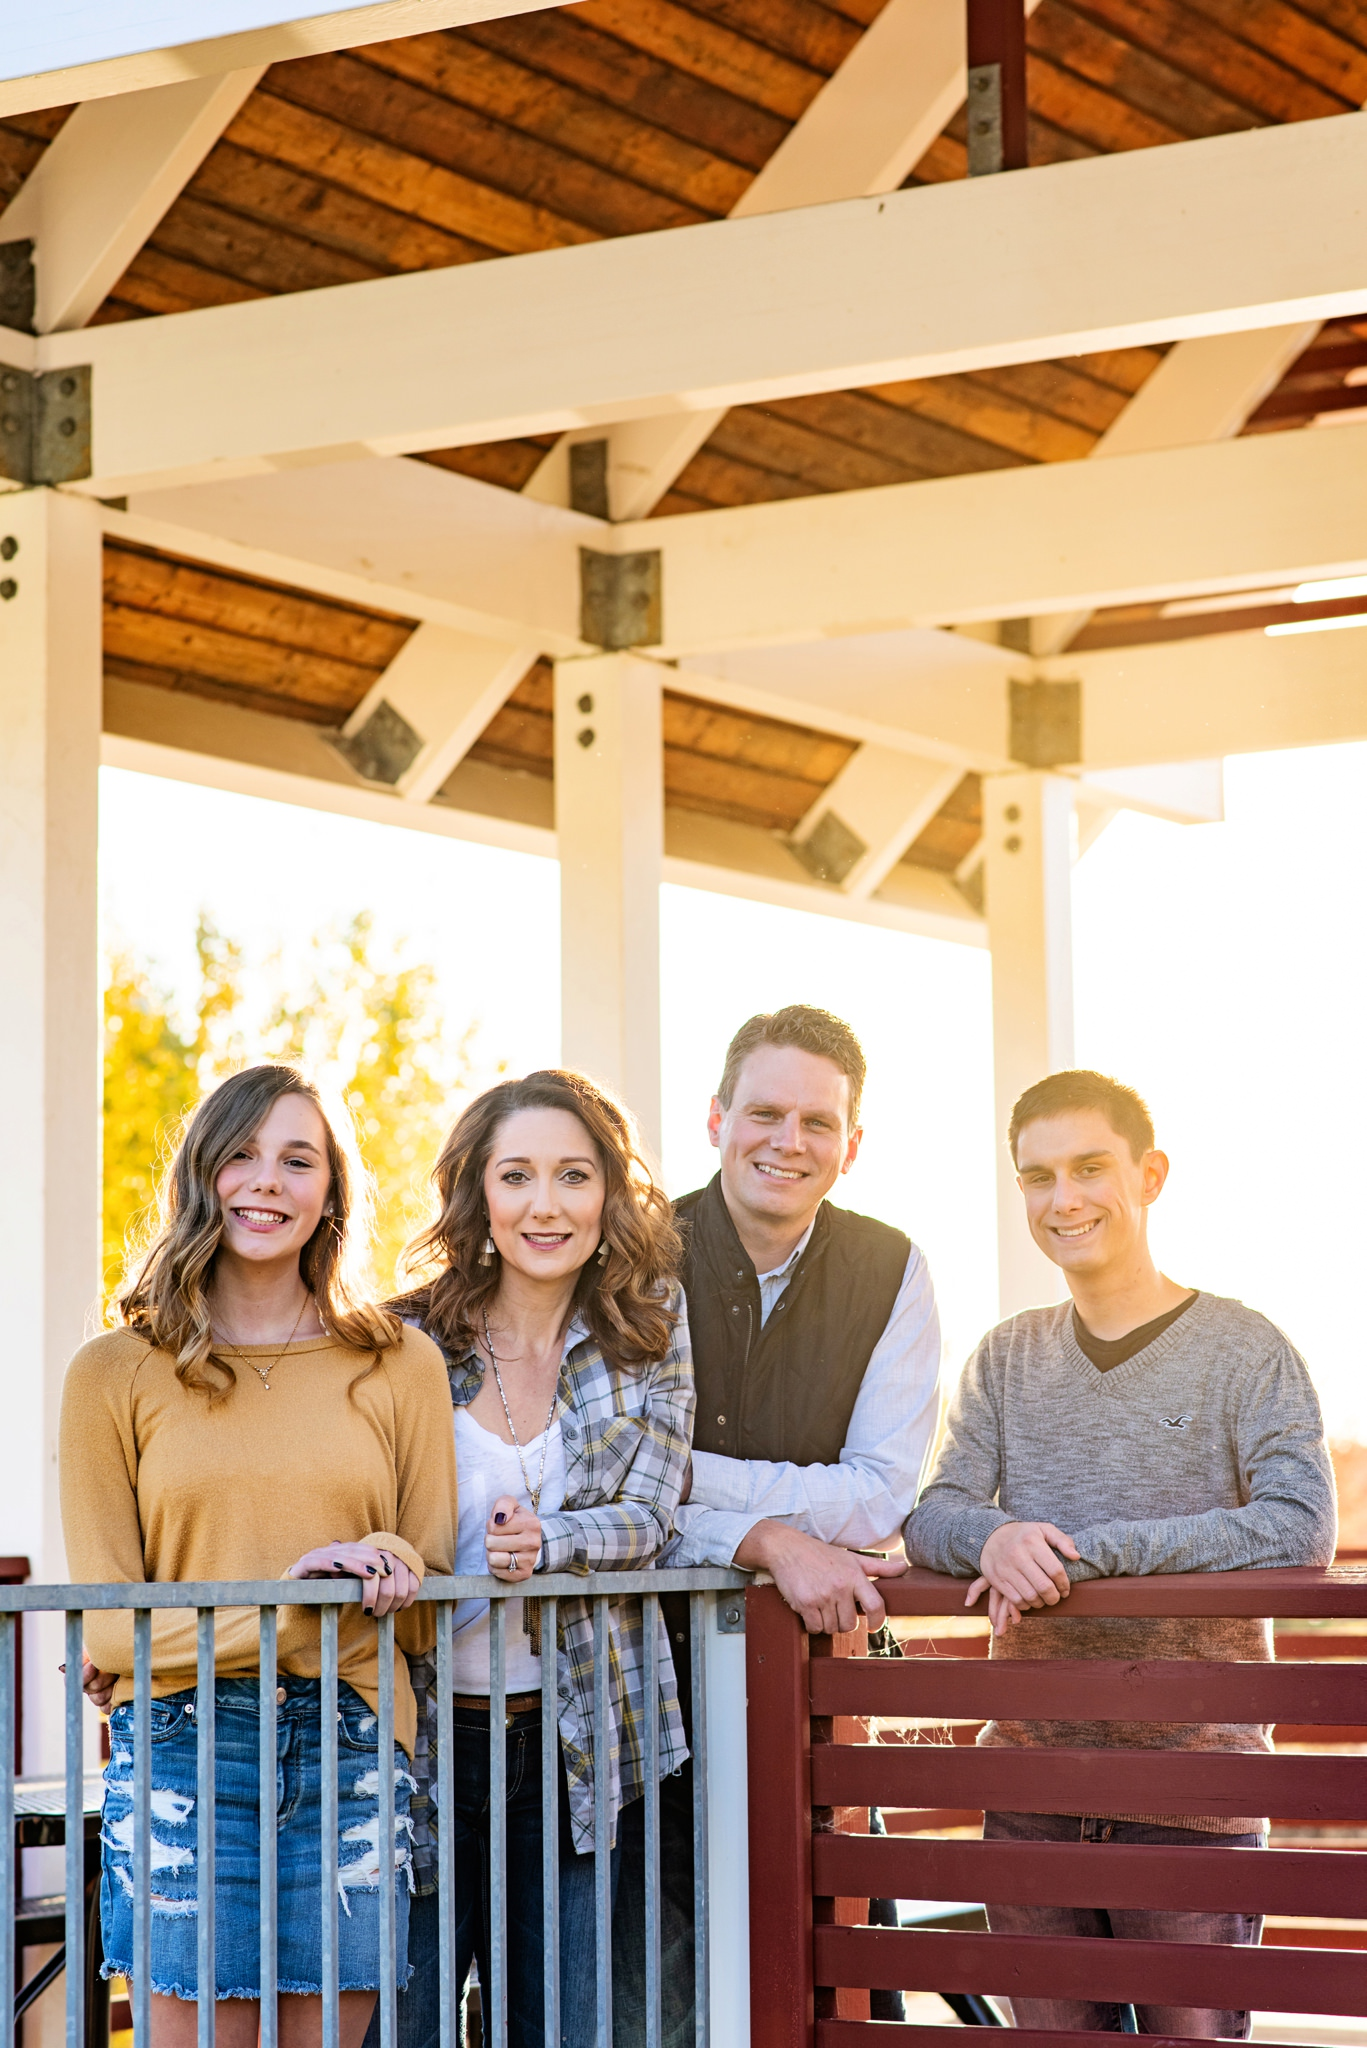 Wittwer-Family-Rotella-Photography-2018-5_WEB.jpg